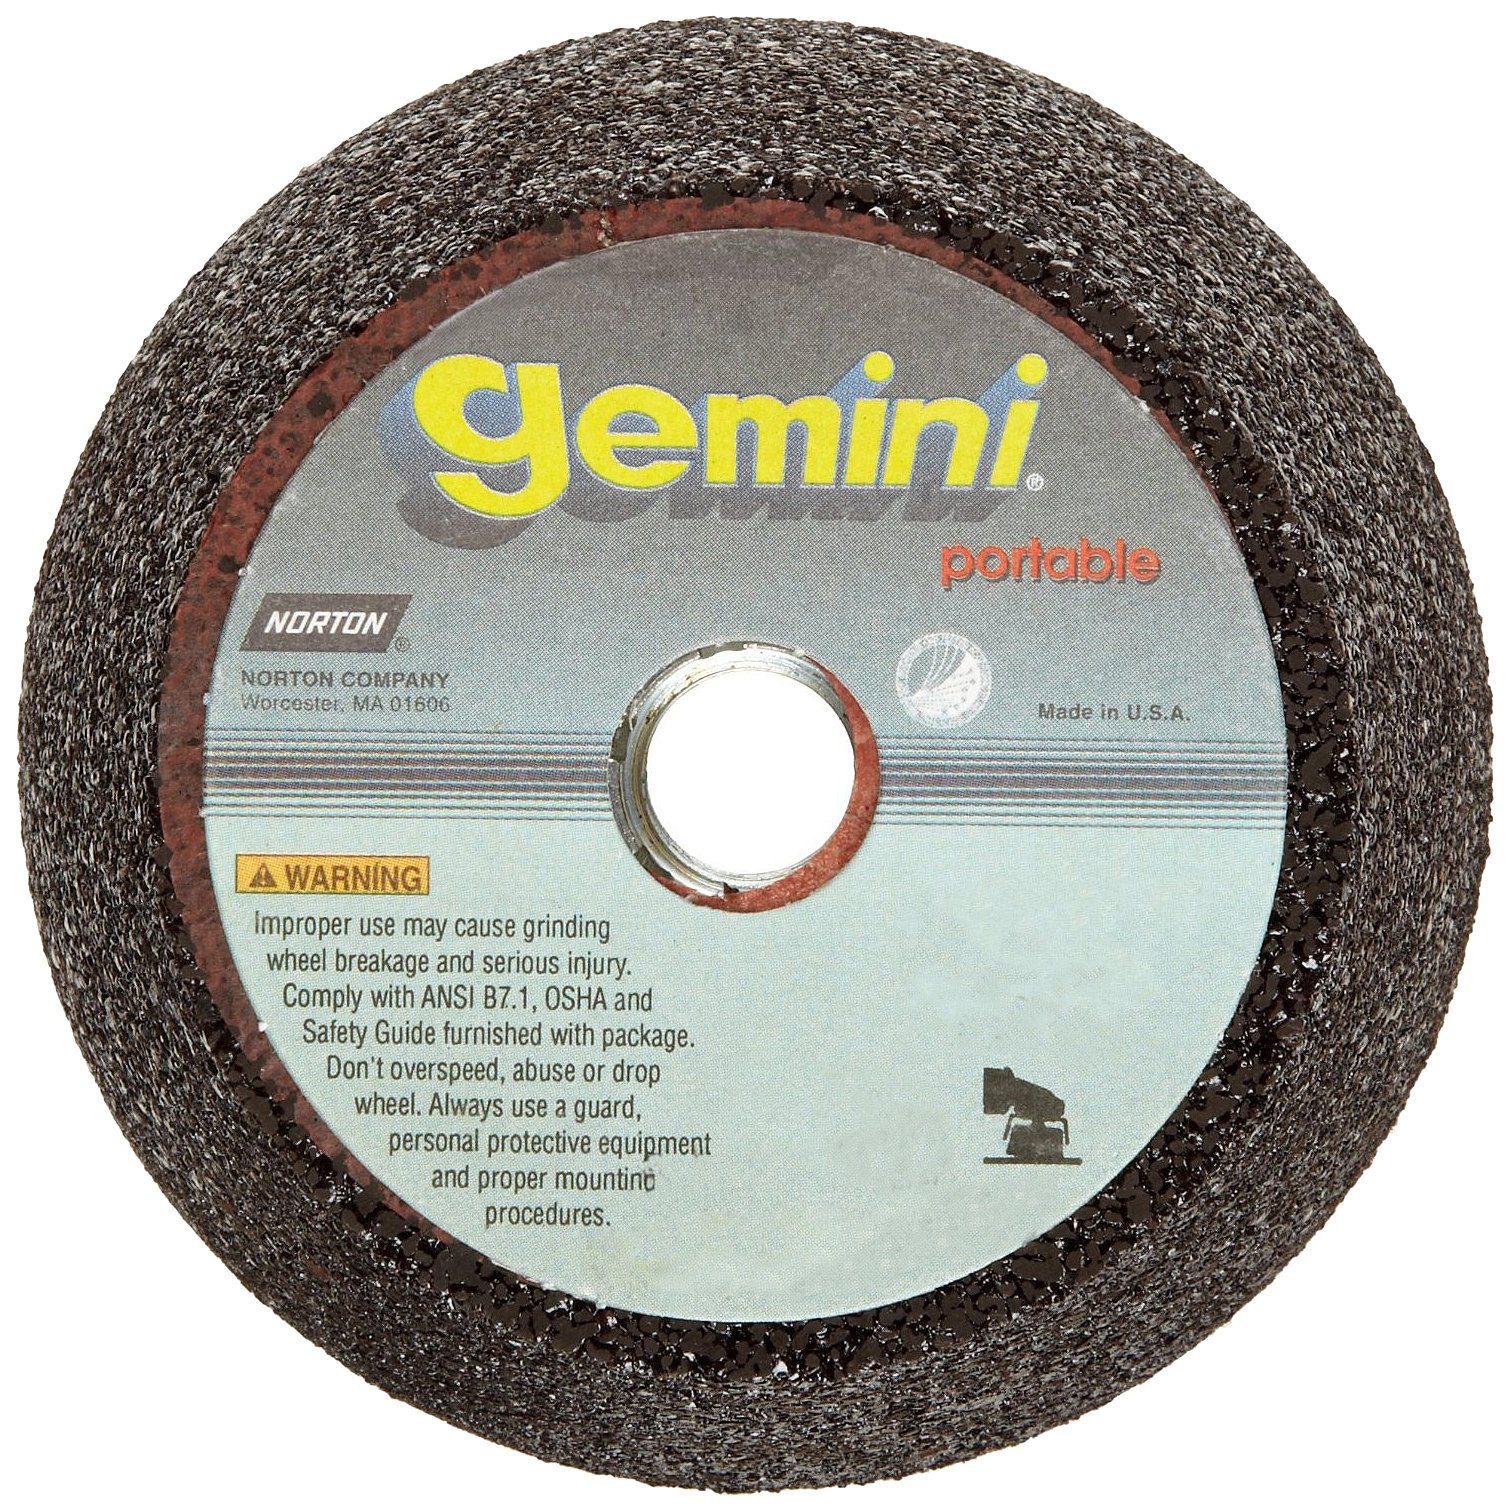 Norton Gemini Portable Snagging Abrasive Wheel, Type 11 Flaring Cup, 5/8''-11 Hole Diameter, Aluminum Oxide, 4/3'' Diameter x 2'' Thickness, Grit 16 (Pack of 1)